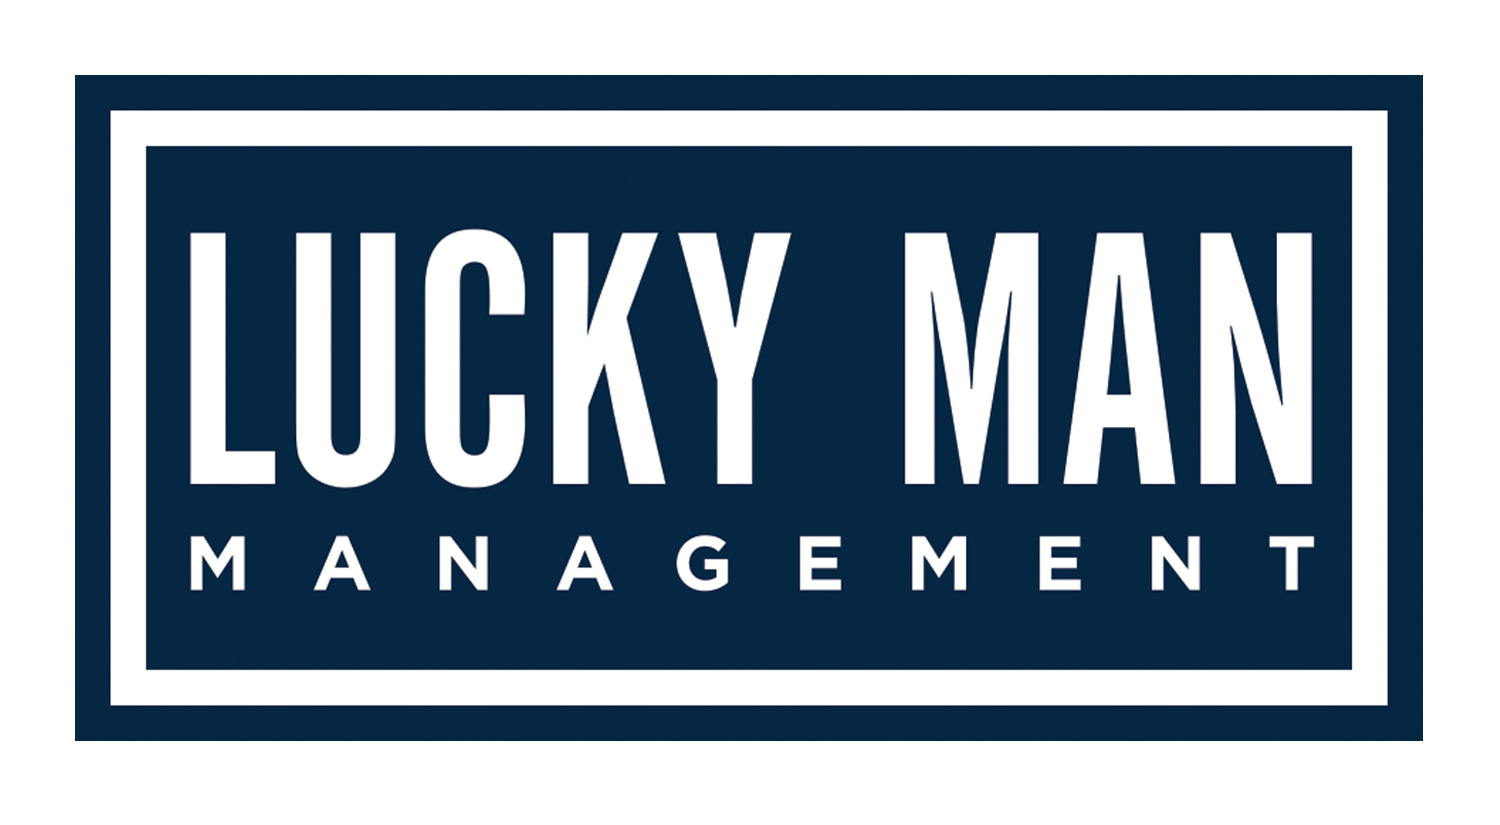 Lucky Man Management